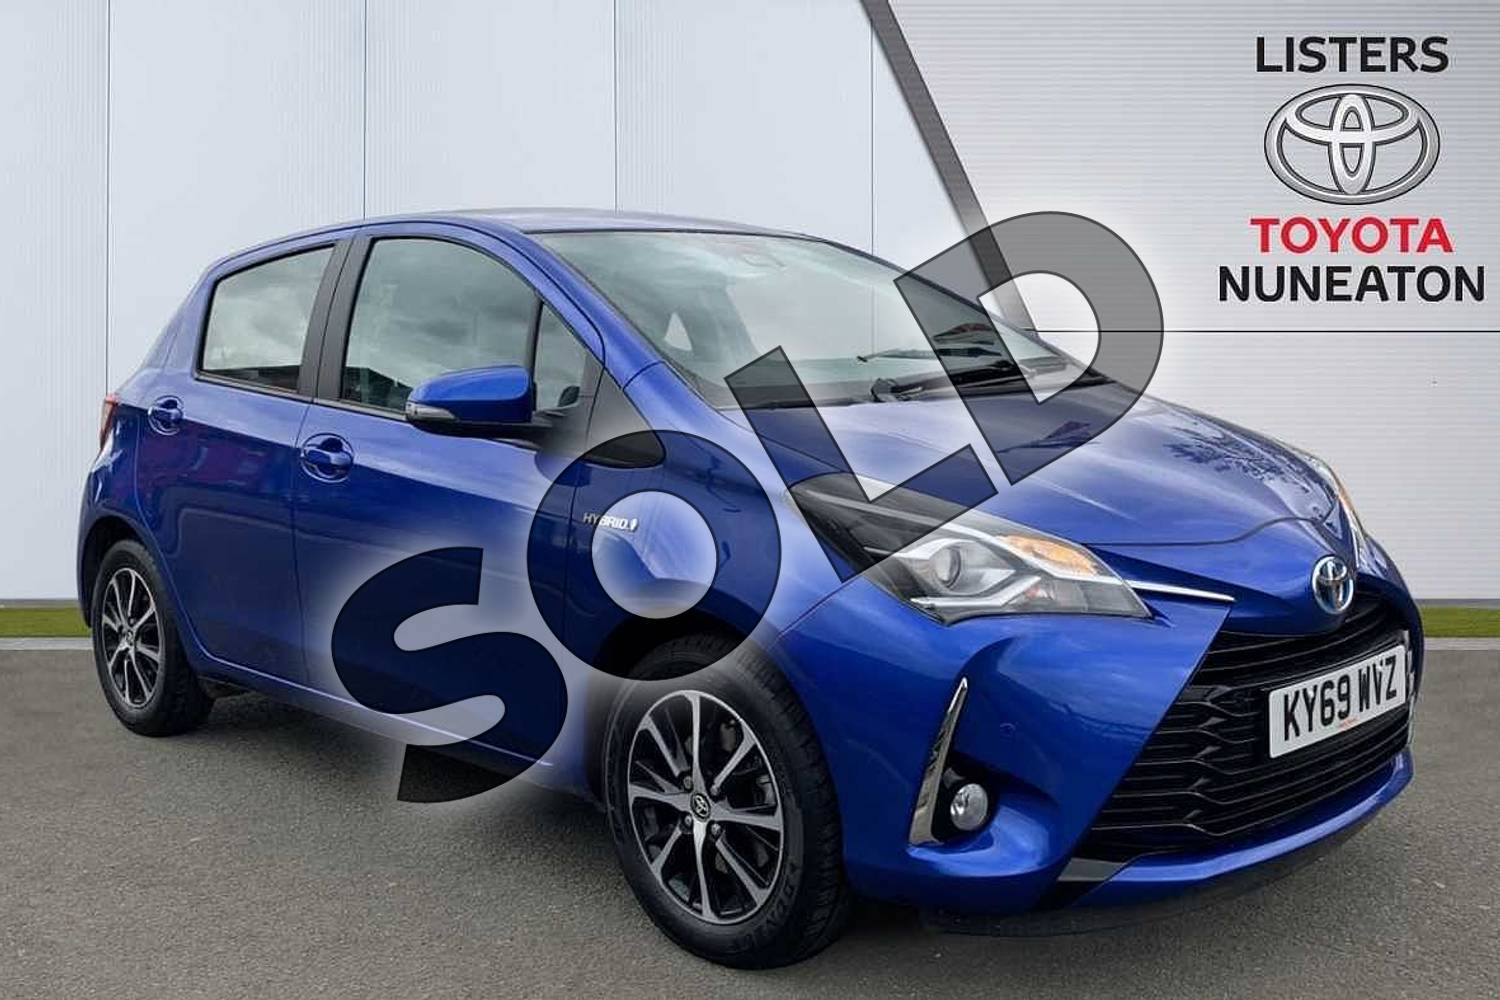 2019 Toyota Yaris Hatchback 1.5 Hybrid Icon Tech 5dr CVT in Blue at Listers Toyota Nuneaton